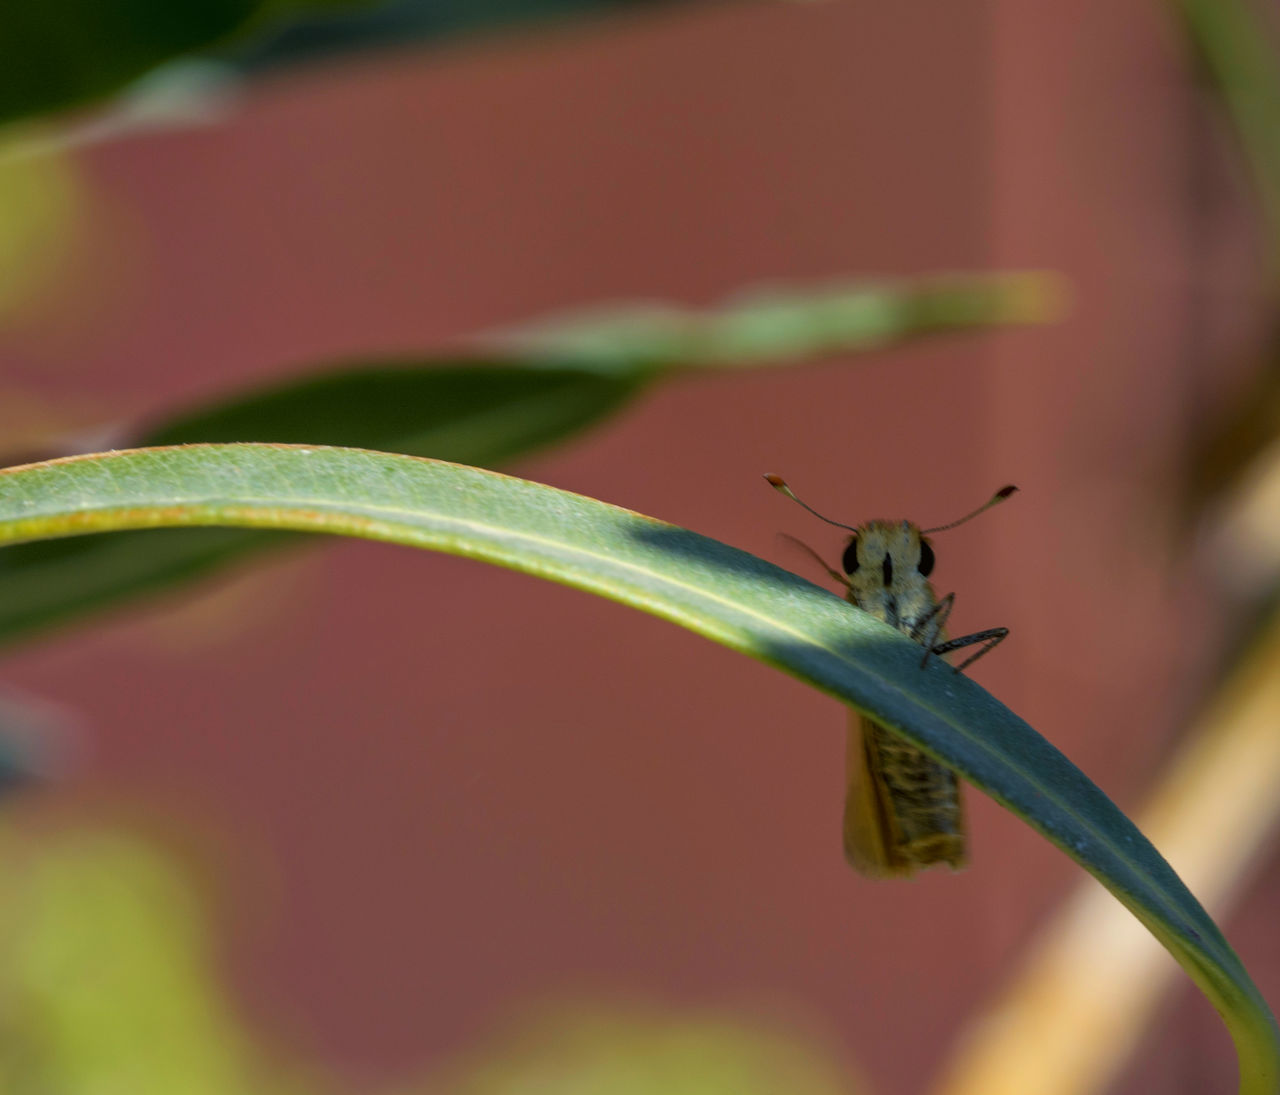 one animal, animals in the wild, insect, animal themes, close-up, animal wildlife, green color, selective focus, leaf, day, no people, outdoors, nature